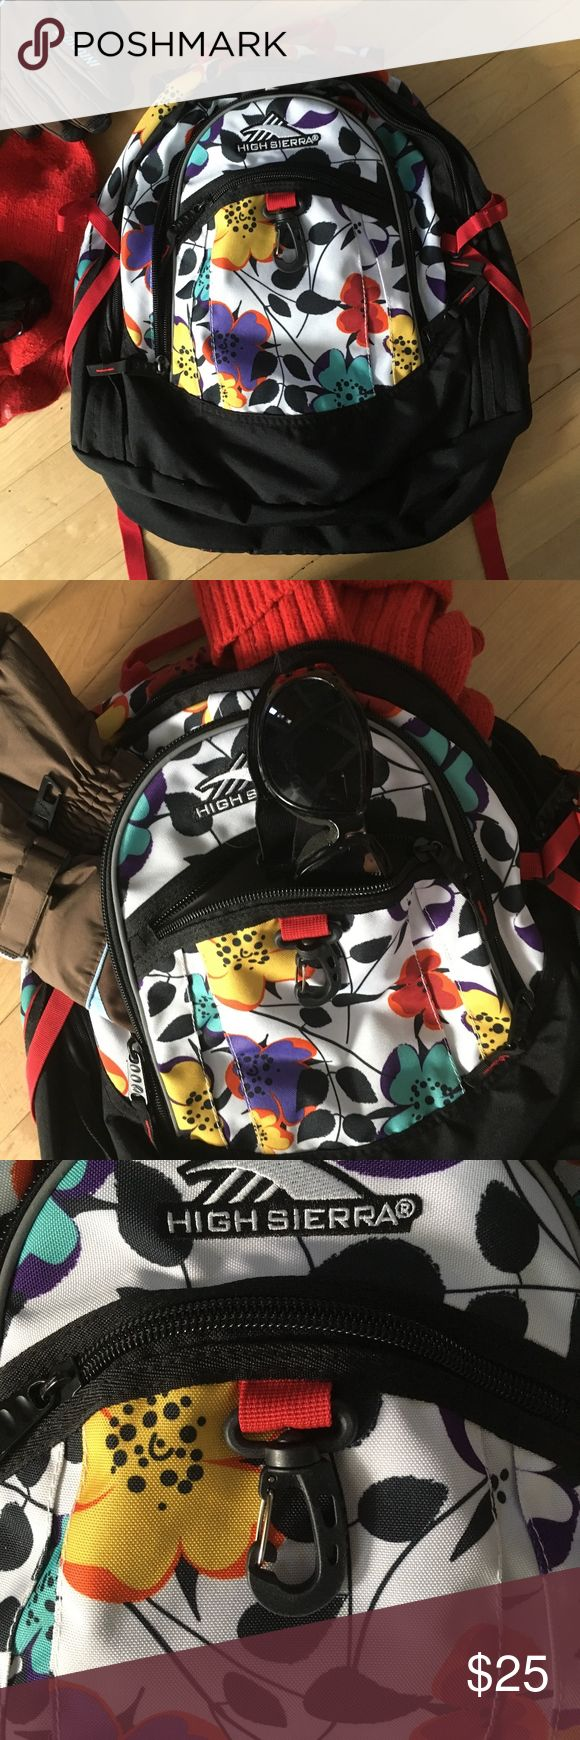 High Sierra Backpack Black and white with flowers High Sierra Backpack with Suspension Strap System, three pockets to separate all your necessities and more durable for hiking and adventure Jansport Bags Backpacks